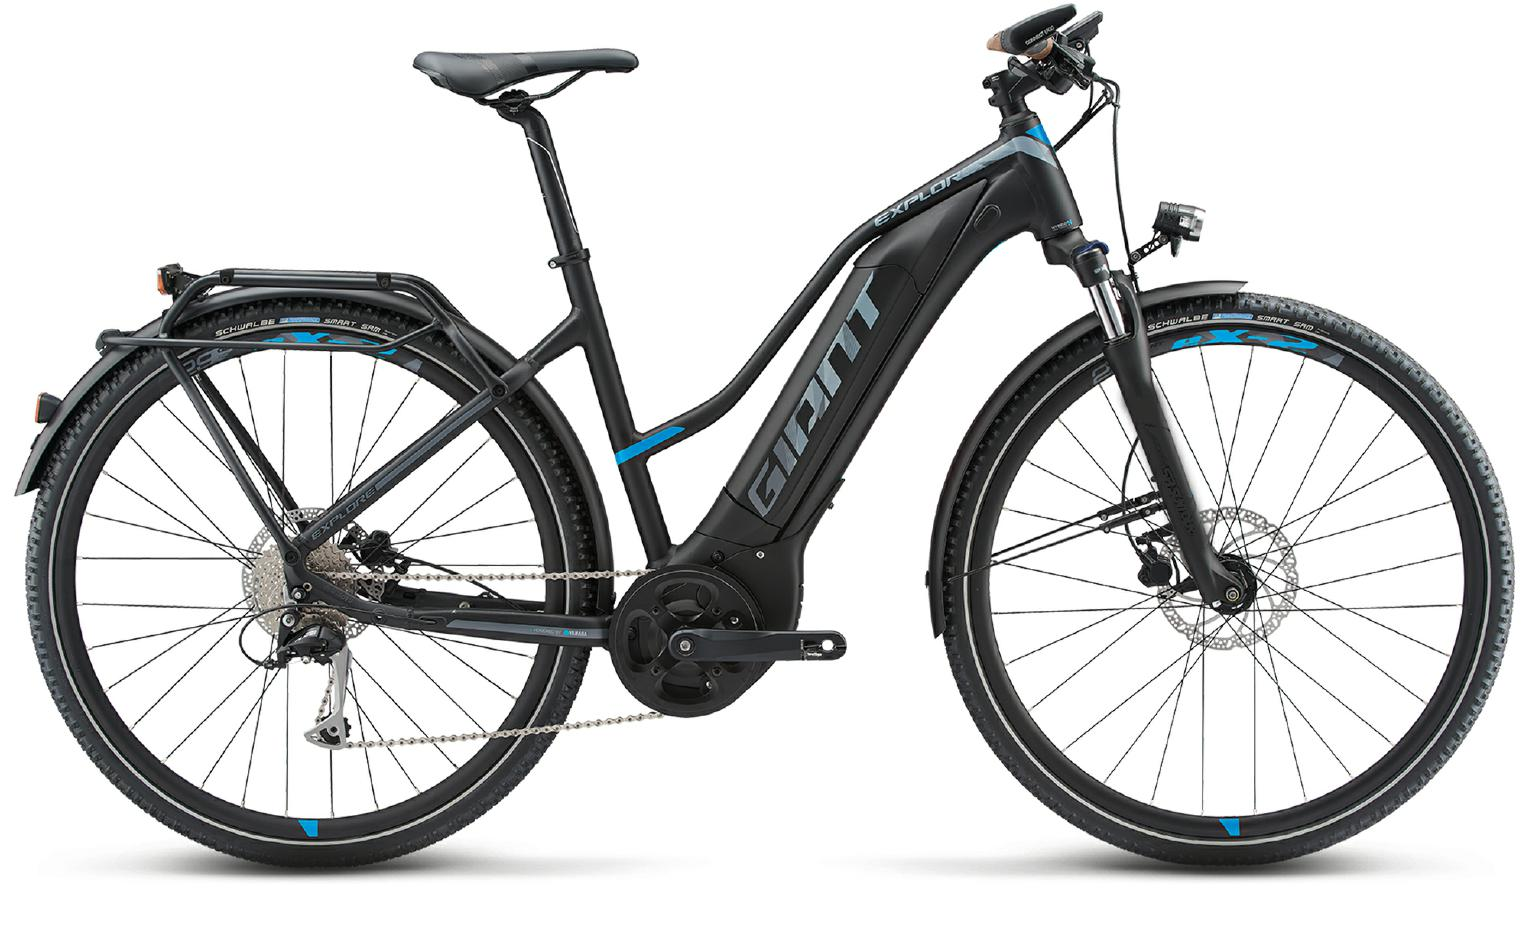 Giant Explore E+ 1 - STA - Trekking e-Bike - 2019